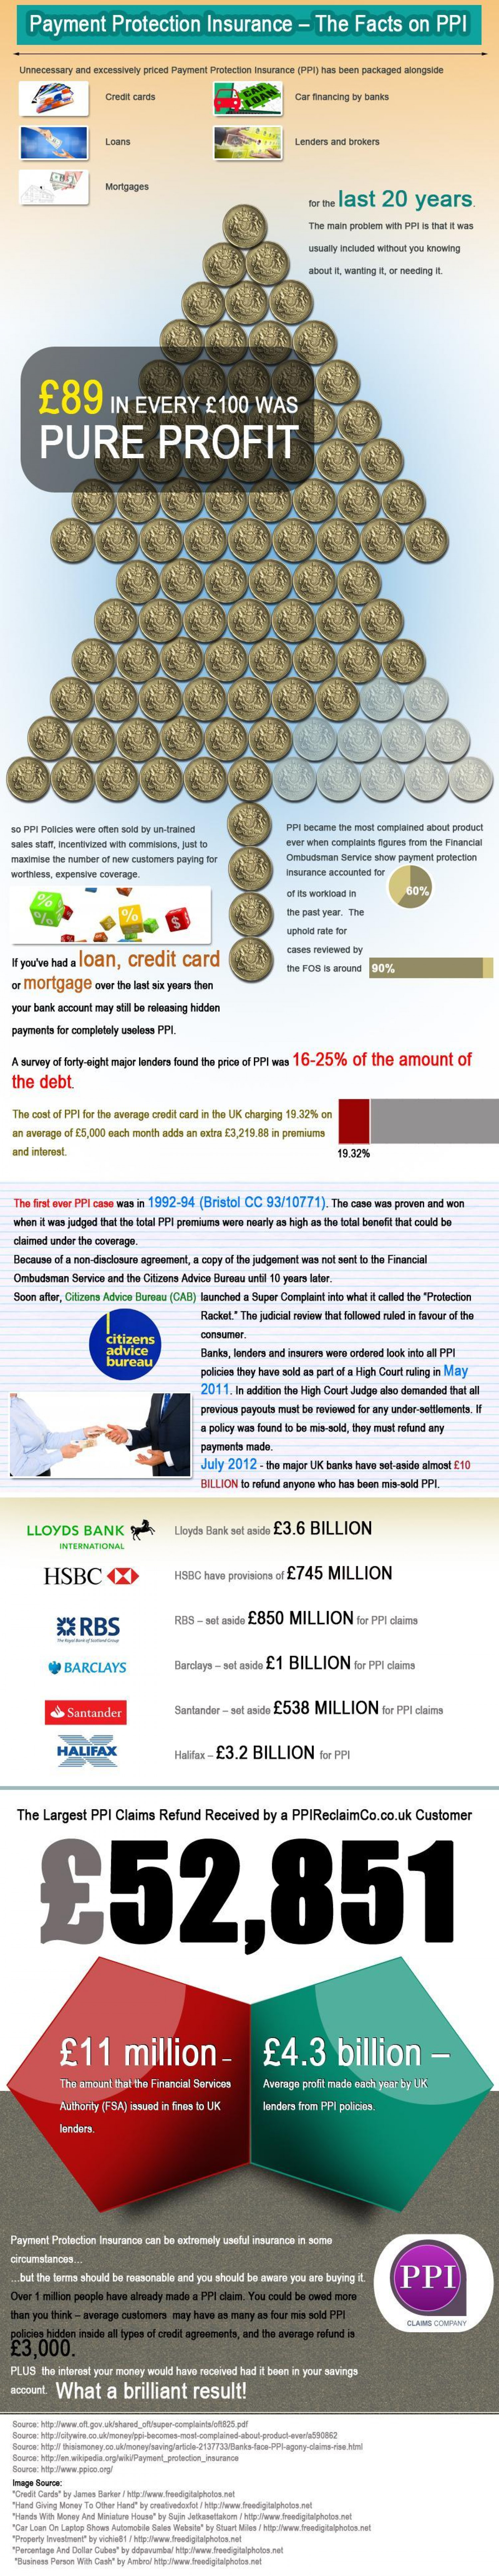 Payment Protection Insurance Infographic